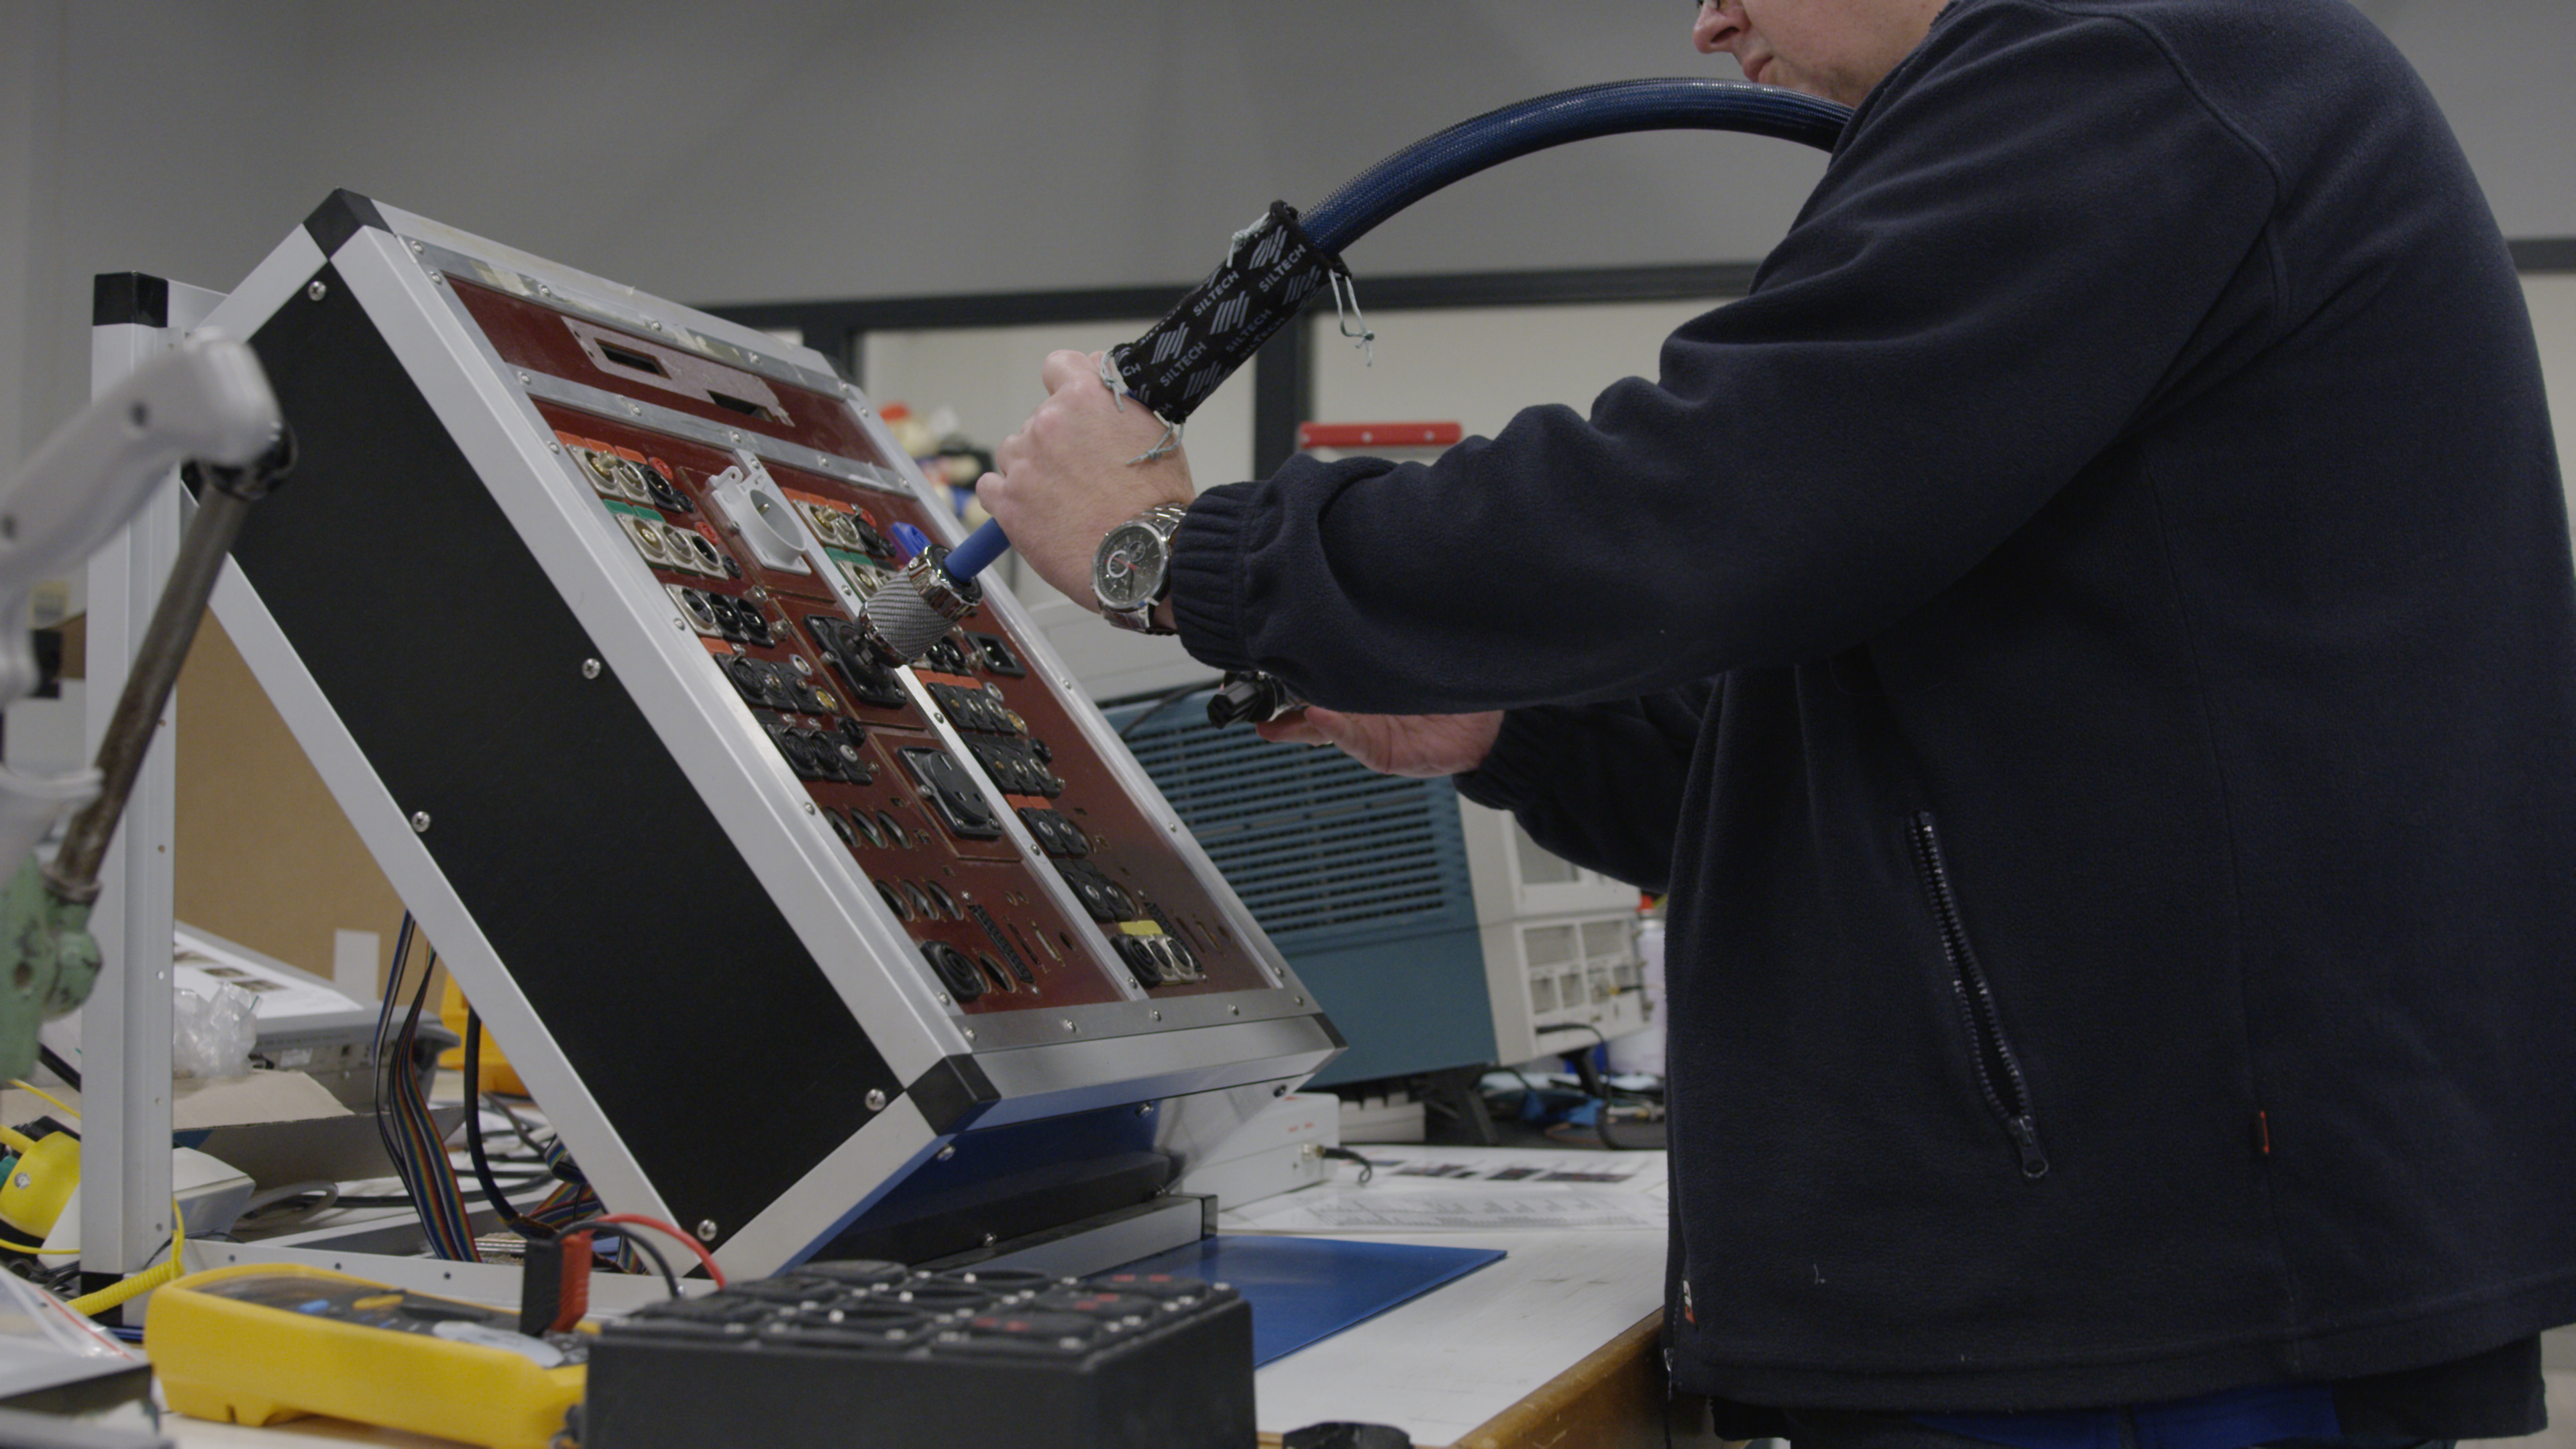 Production_Cabletester_2019-A.jpg